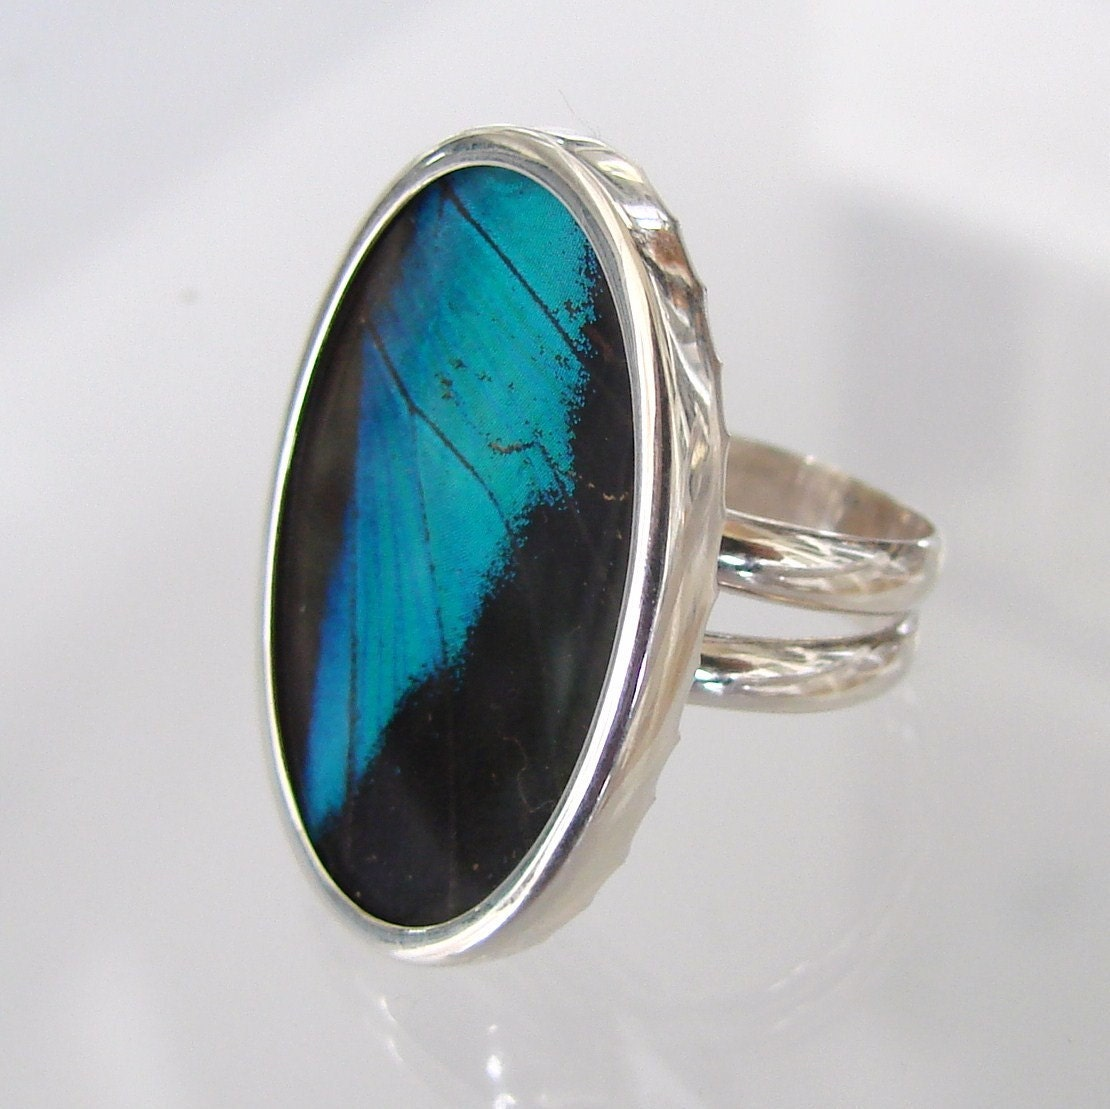 Shimmery Wing - Real Papilio Ulysses Butterfly Wing Ring - Set in Sterling Silver